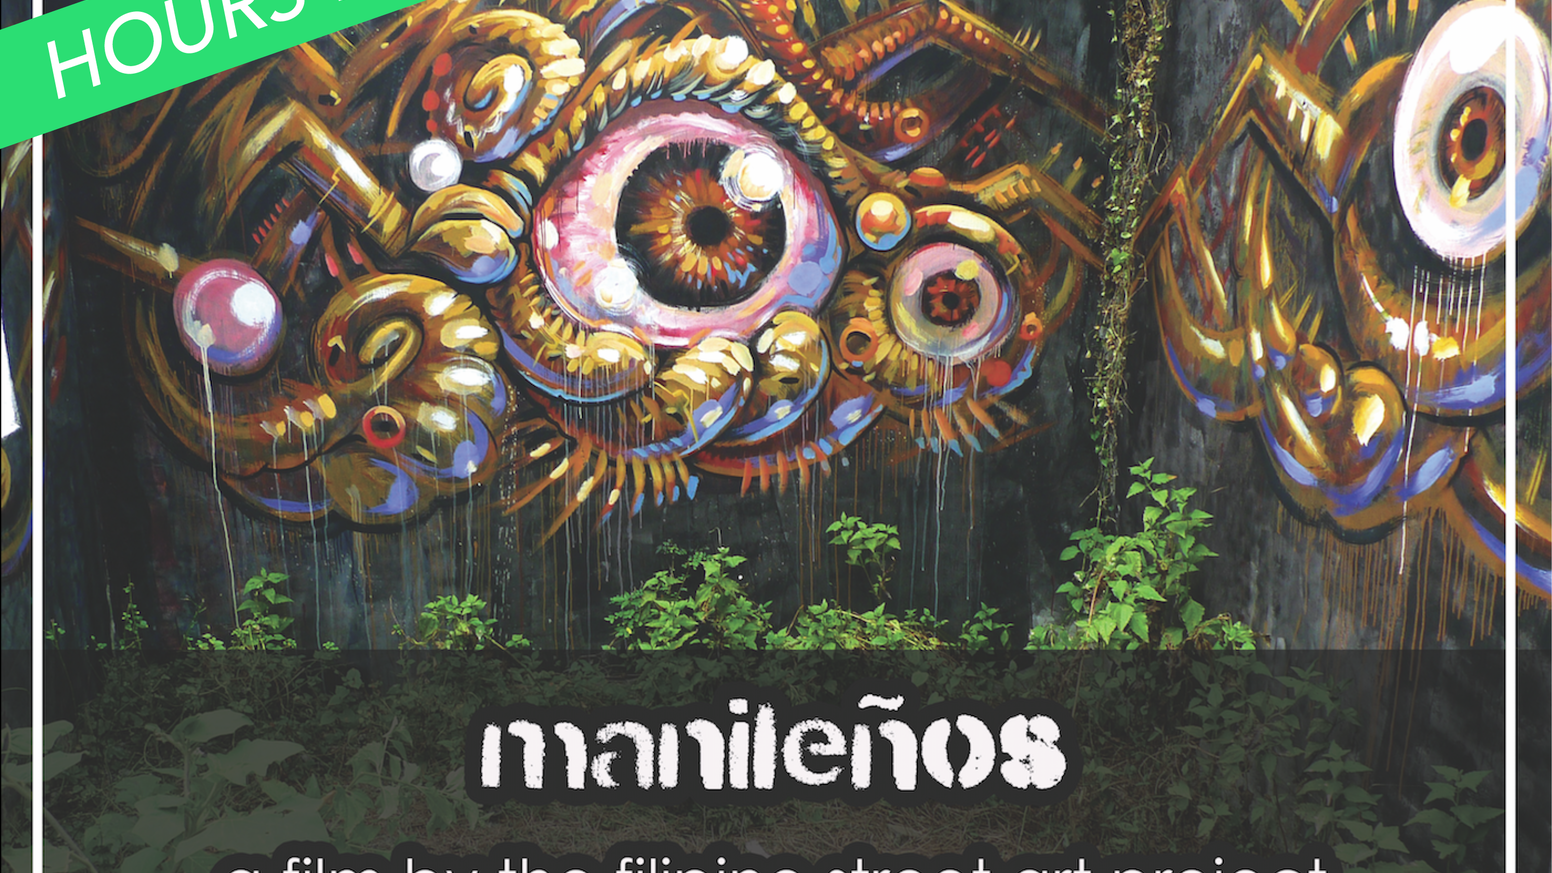 Support Filipino street artists and receive original works from Manila, all while contributing to our social cause as filmmakers.